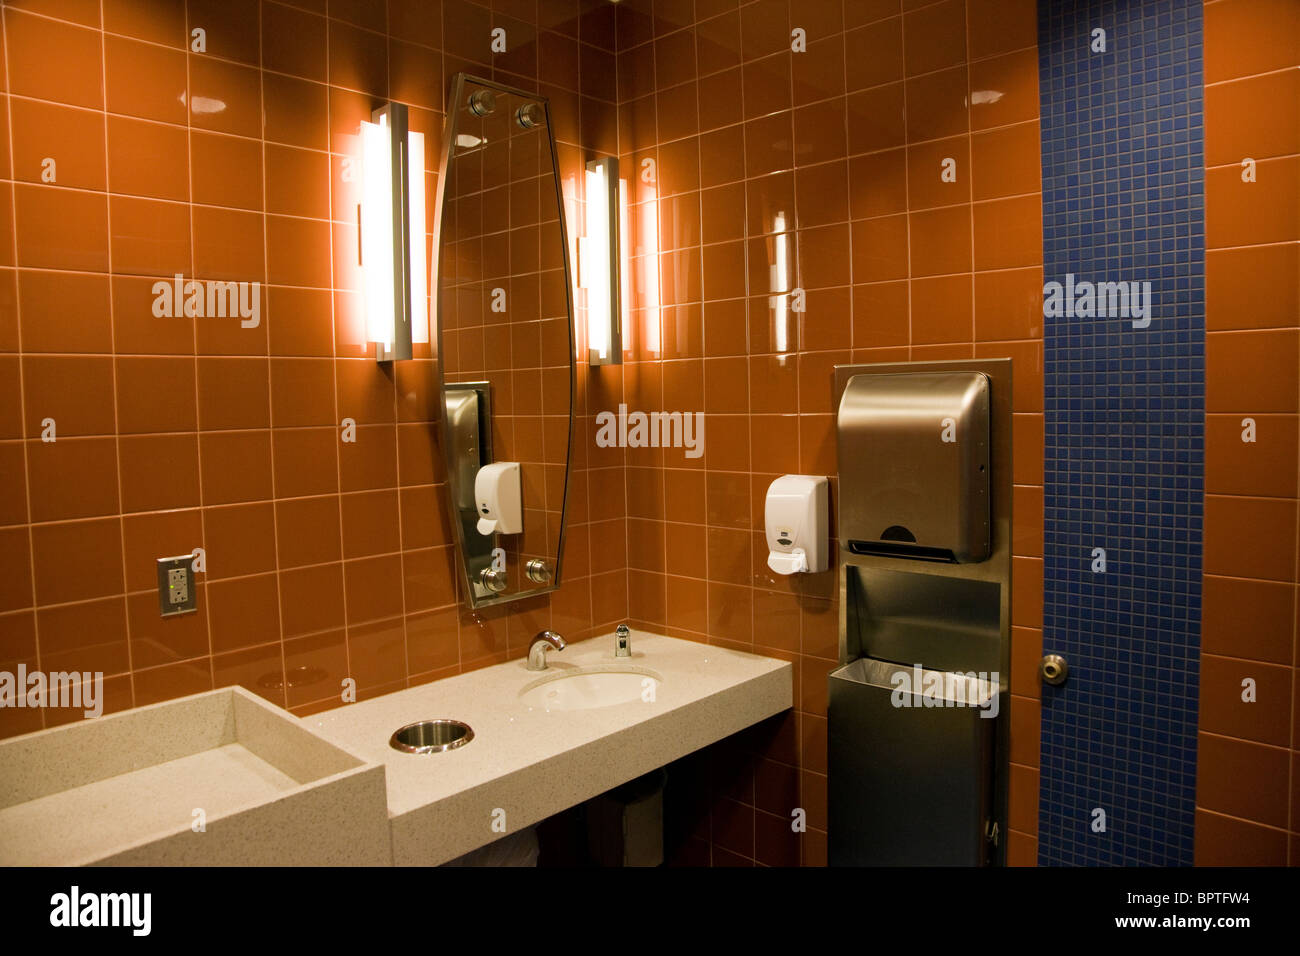 Airport Restroom Stock Photos & Airport Restroom Stock Images - Page ...